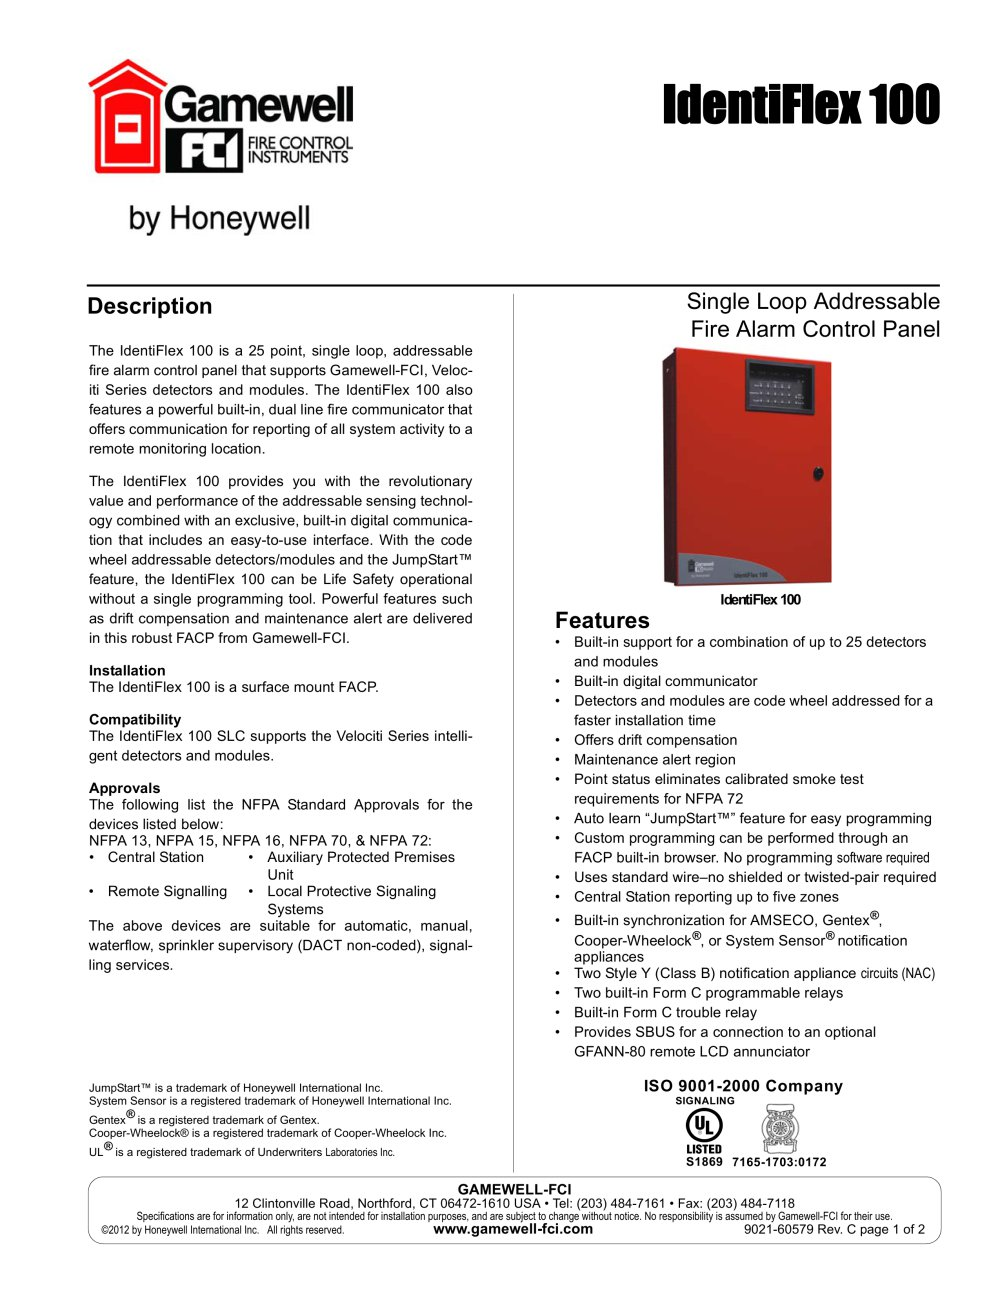 identiflex 100 637070_1b identiflex 100 gamewell fci pdf catalogue technical fci 7100 annunciator wiring diagram at bayanpartner.co